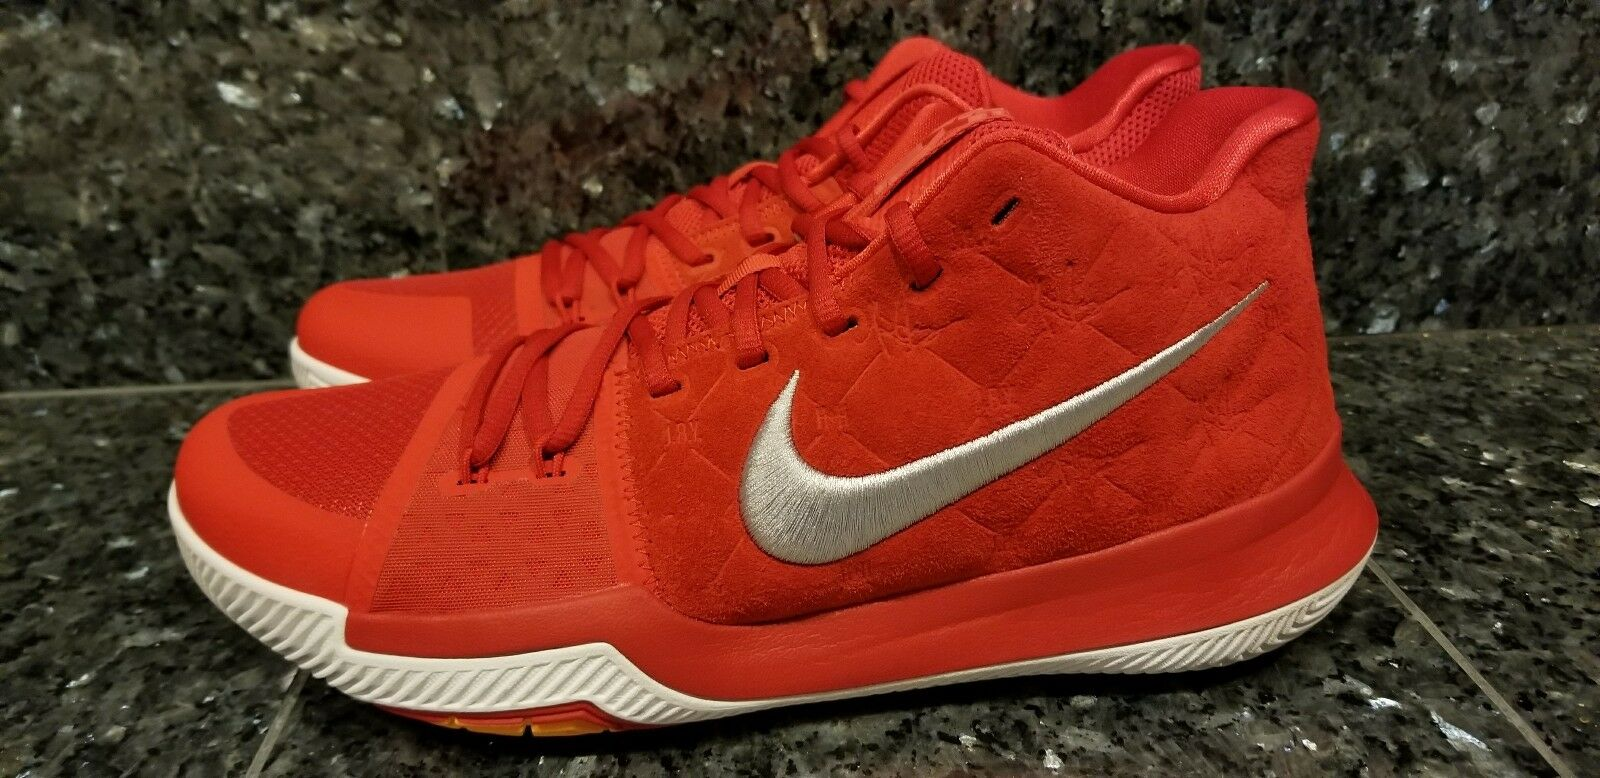 Men's Nike Kyrie 3 University Red Grey White Basketball 852395-601 Size 10-13